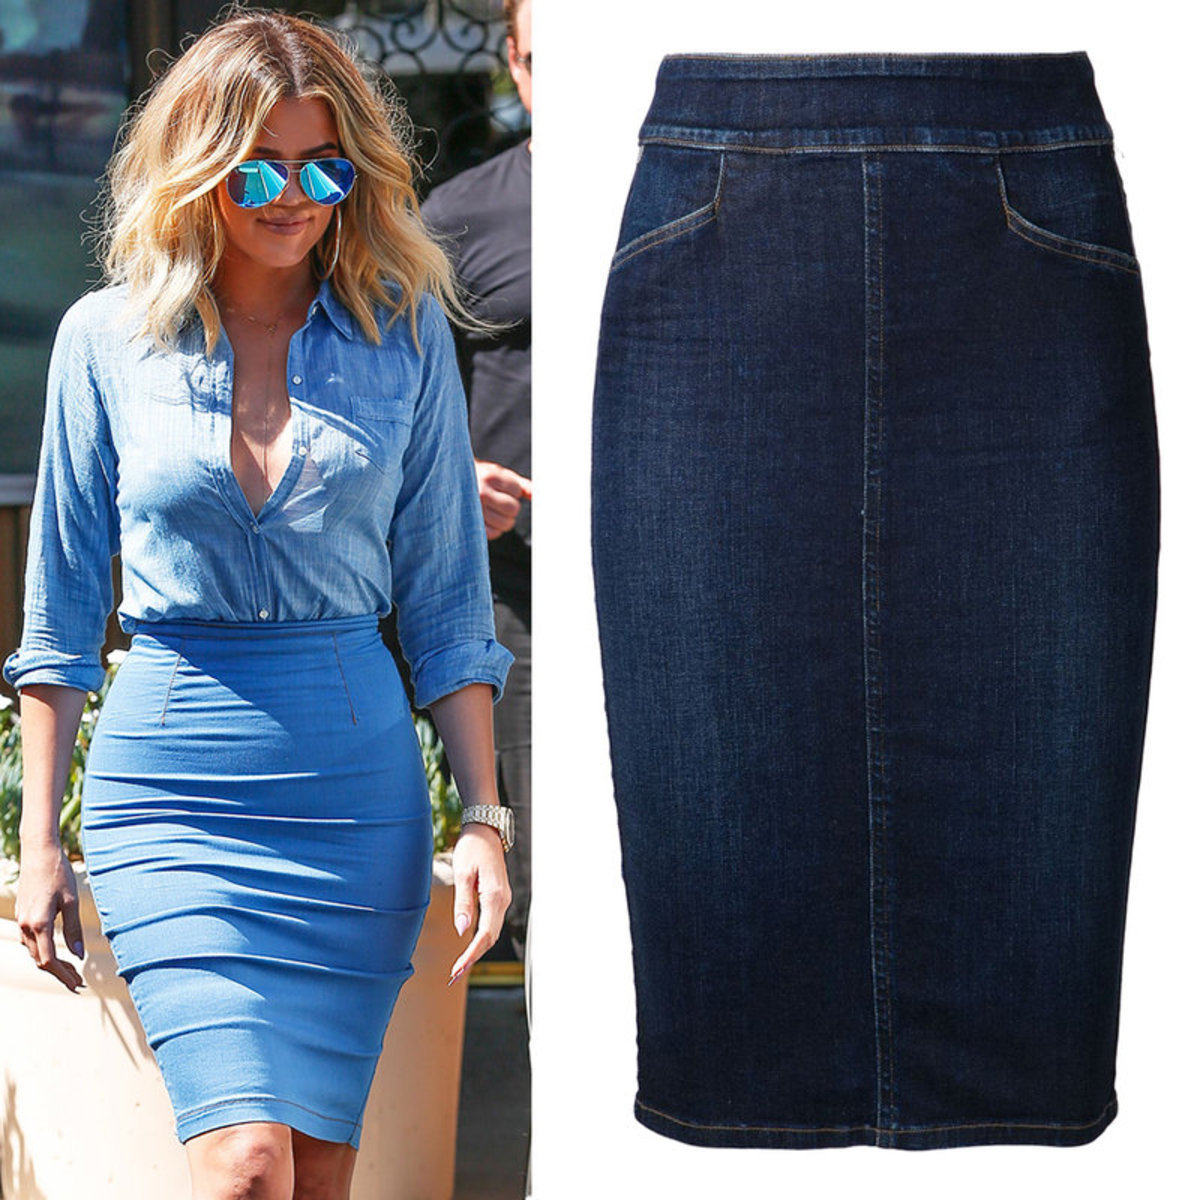 081016-denim-skirt-khloe